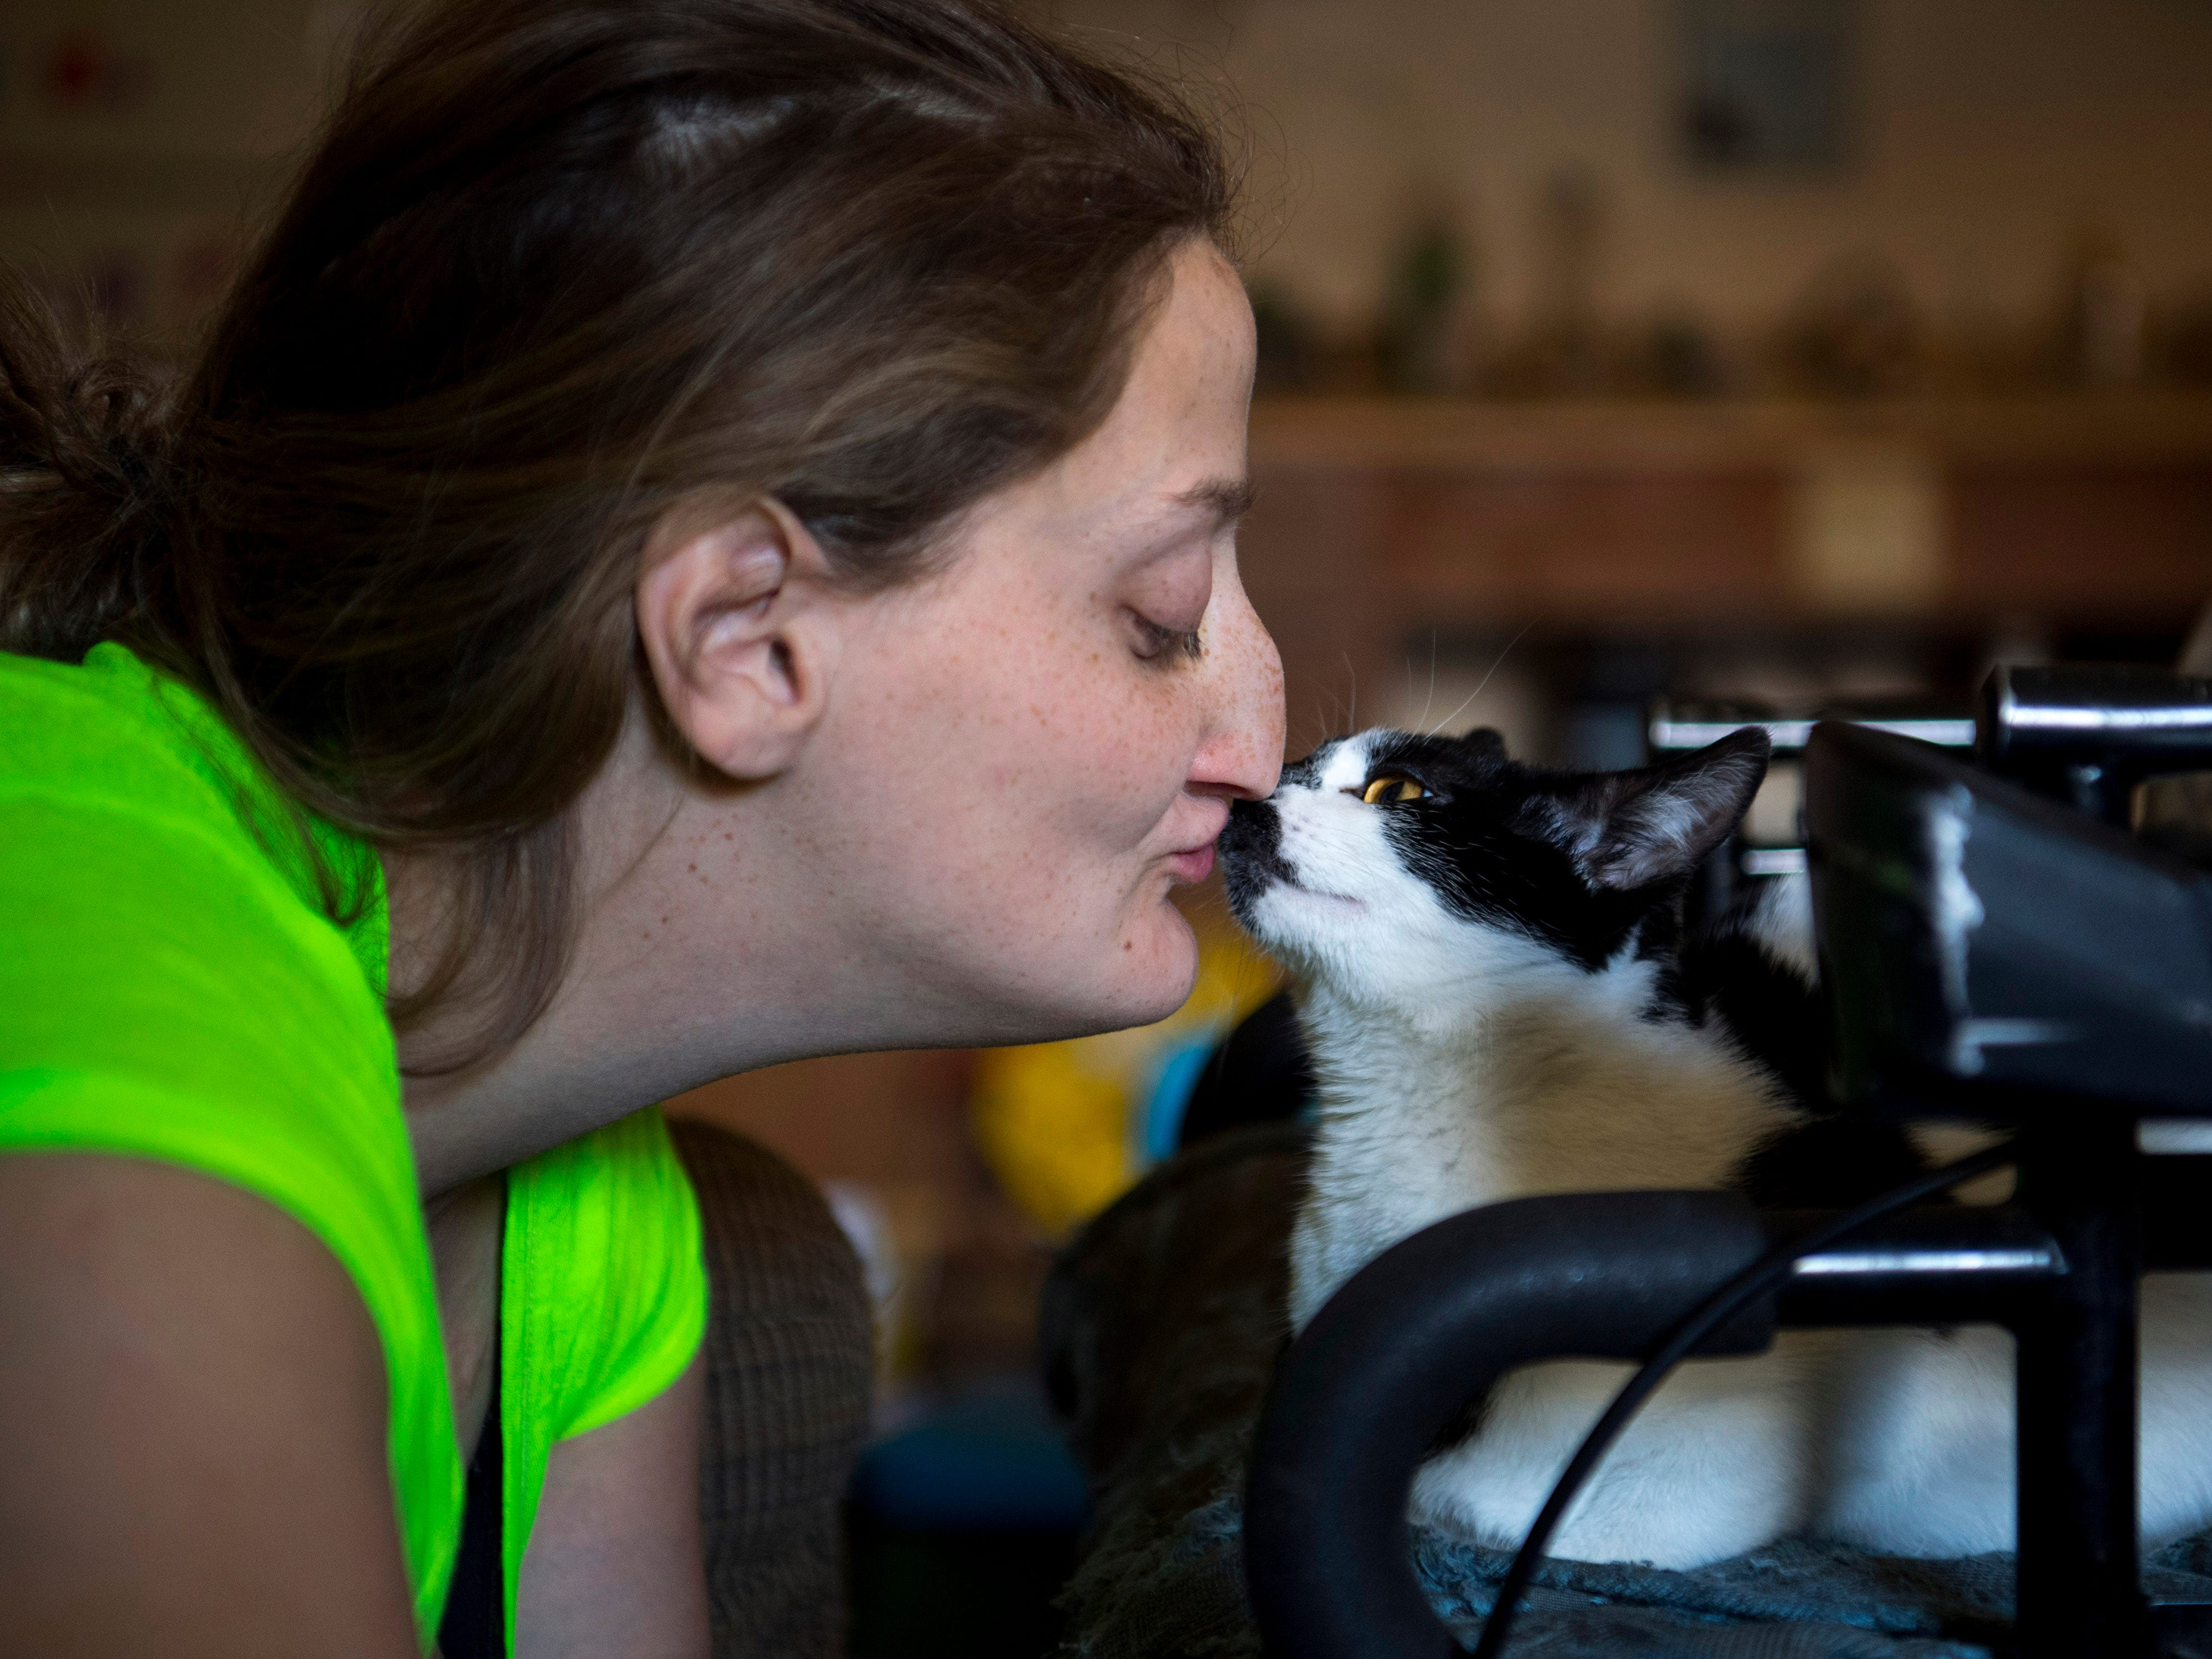 Oreo was a tiny kitten when Amanda and Leland adopted her. Now the full-grown cat keeps Amanda company when Leland is at school.